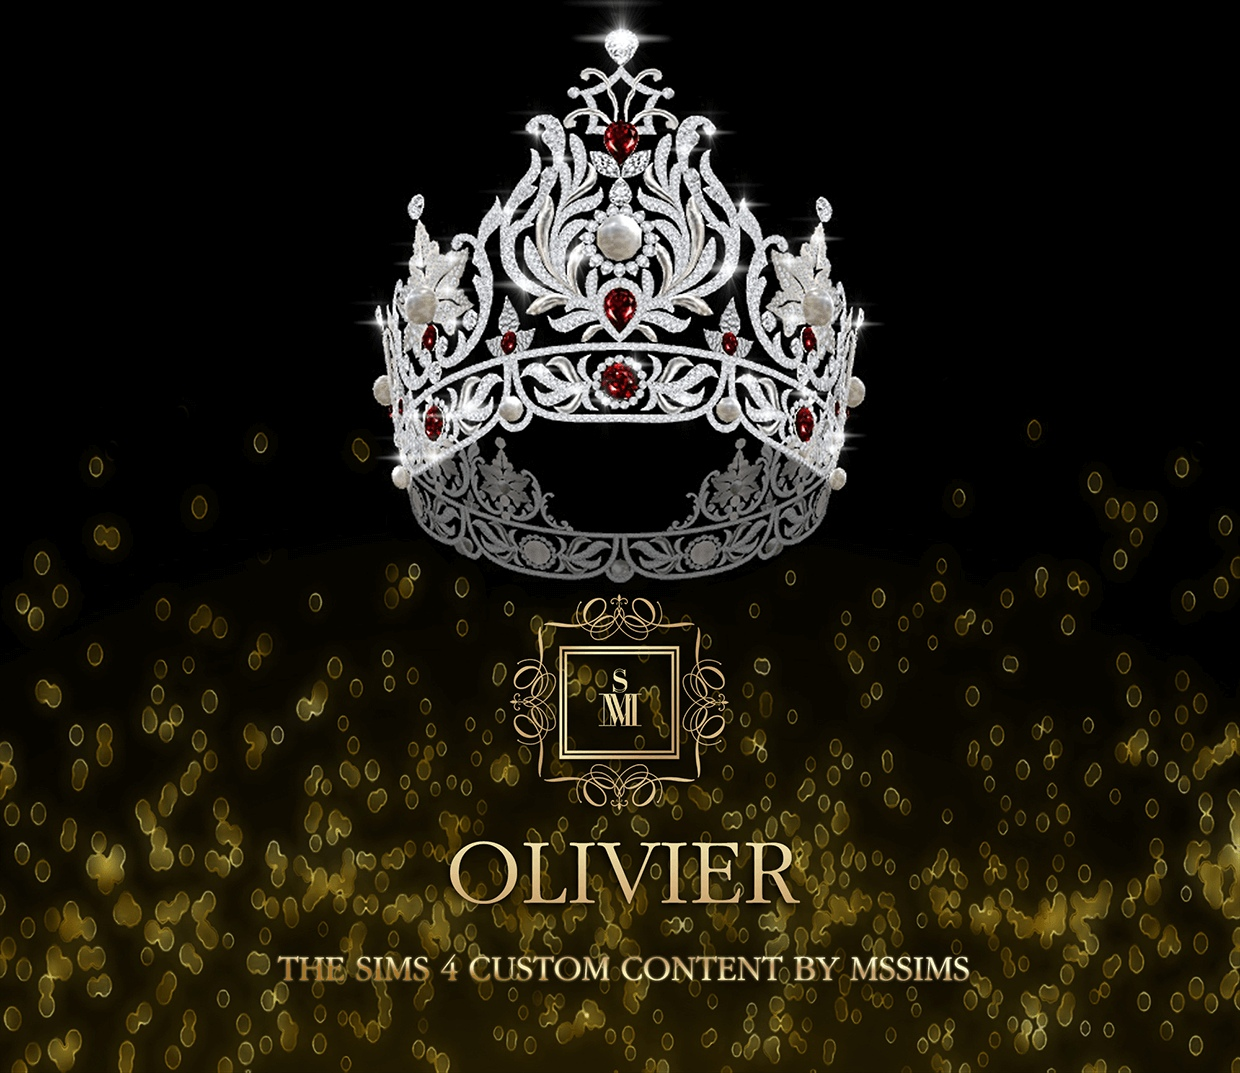 Olivier Crown by MSSIMS